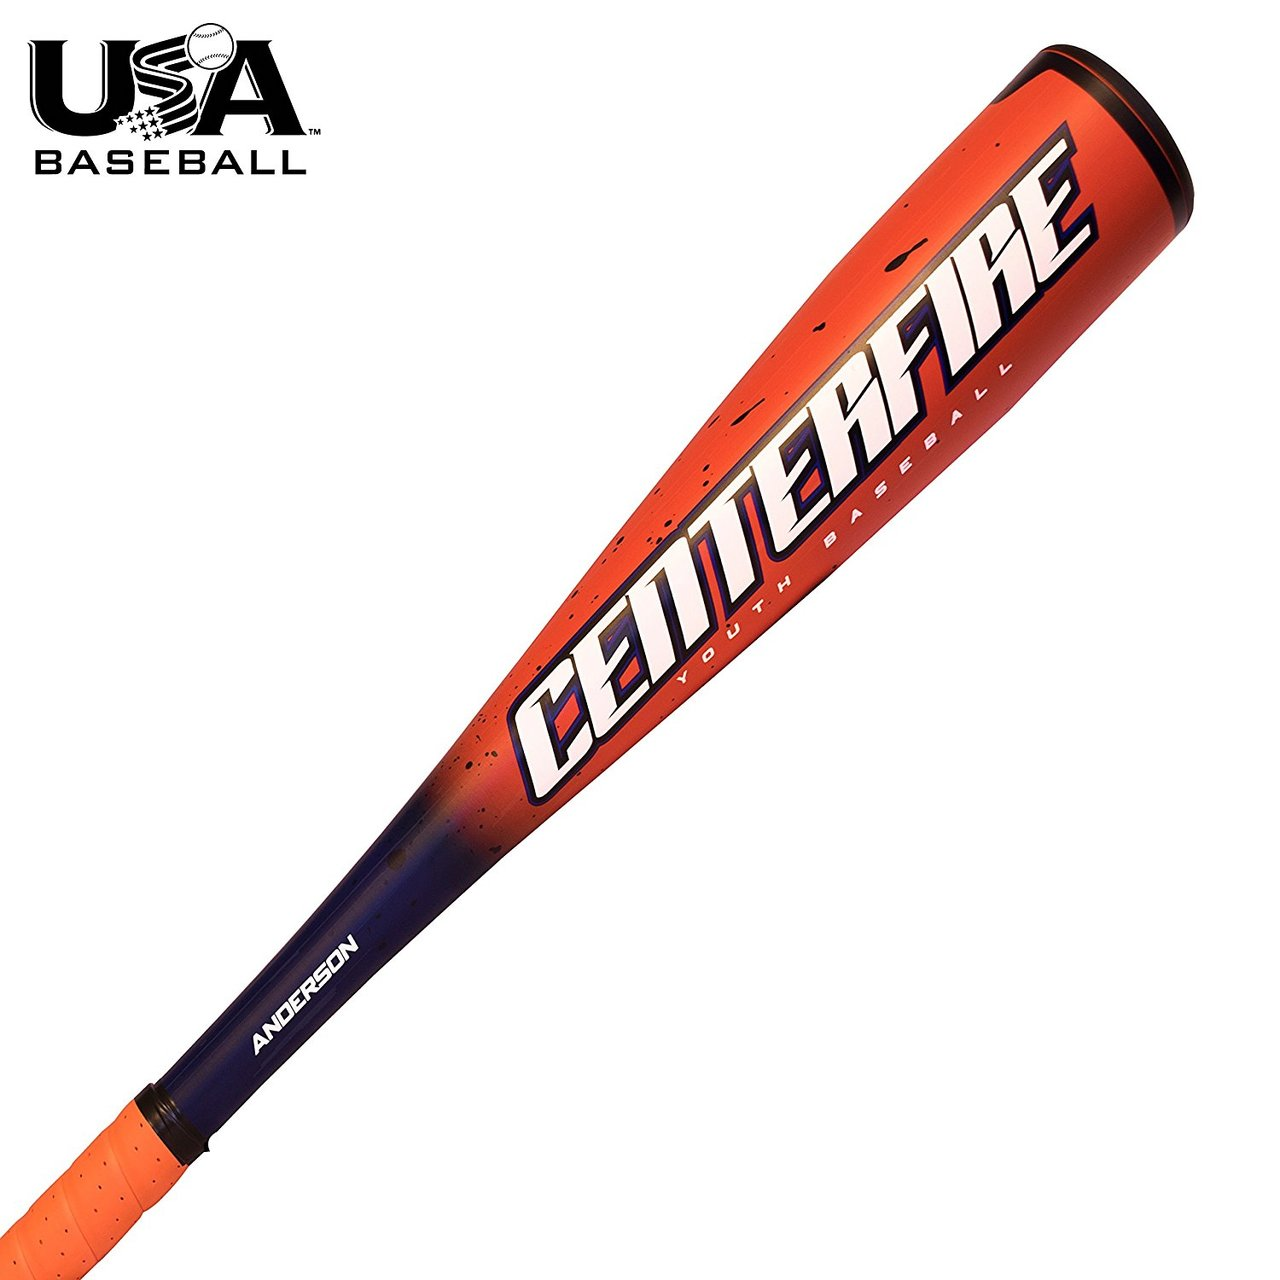 "anderson-2018-centerfire-11-youth-usa-baseball-bat-29-inch-18-oz 015033-2918  874147008546 2 5/8"" Barrel -11 Drop Weight Balanced swing weight for more"